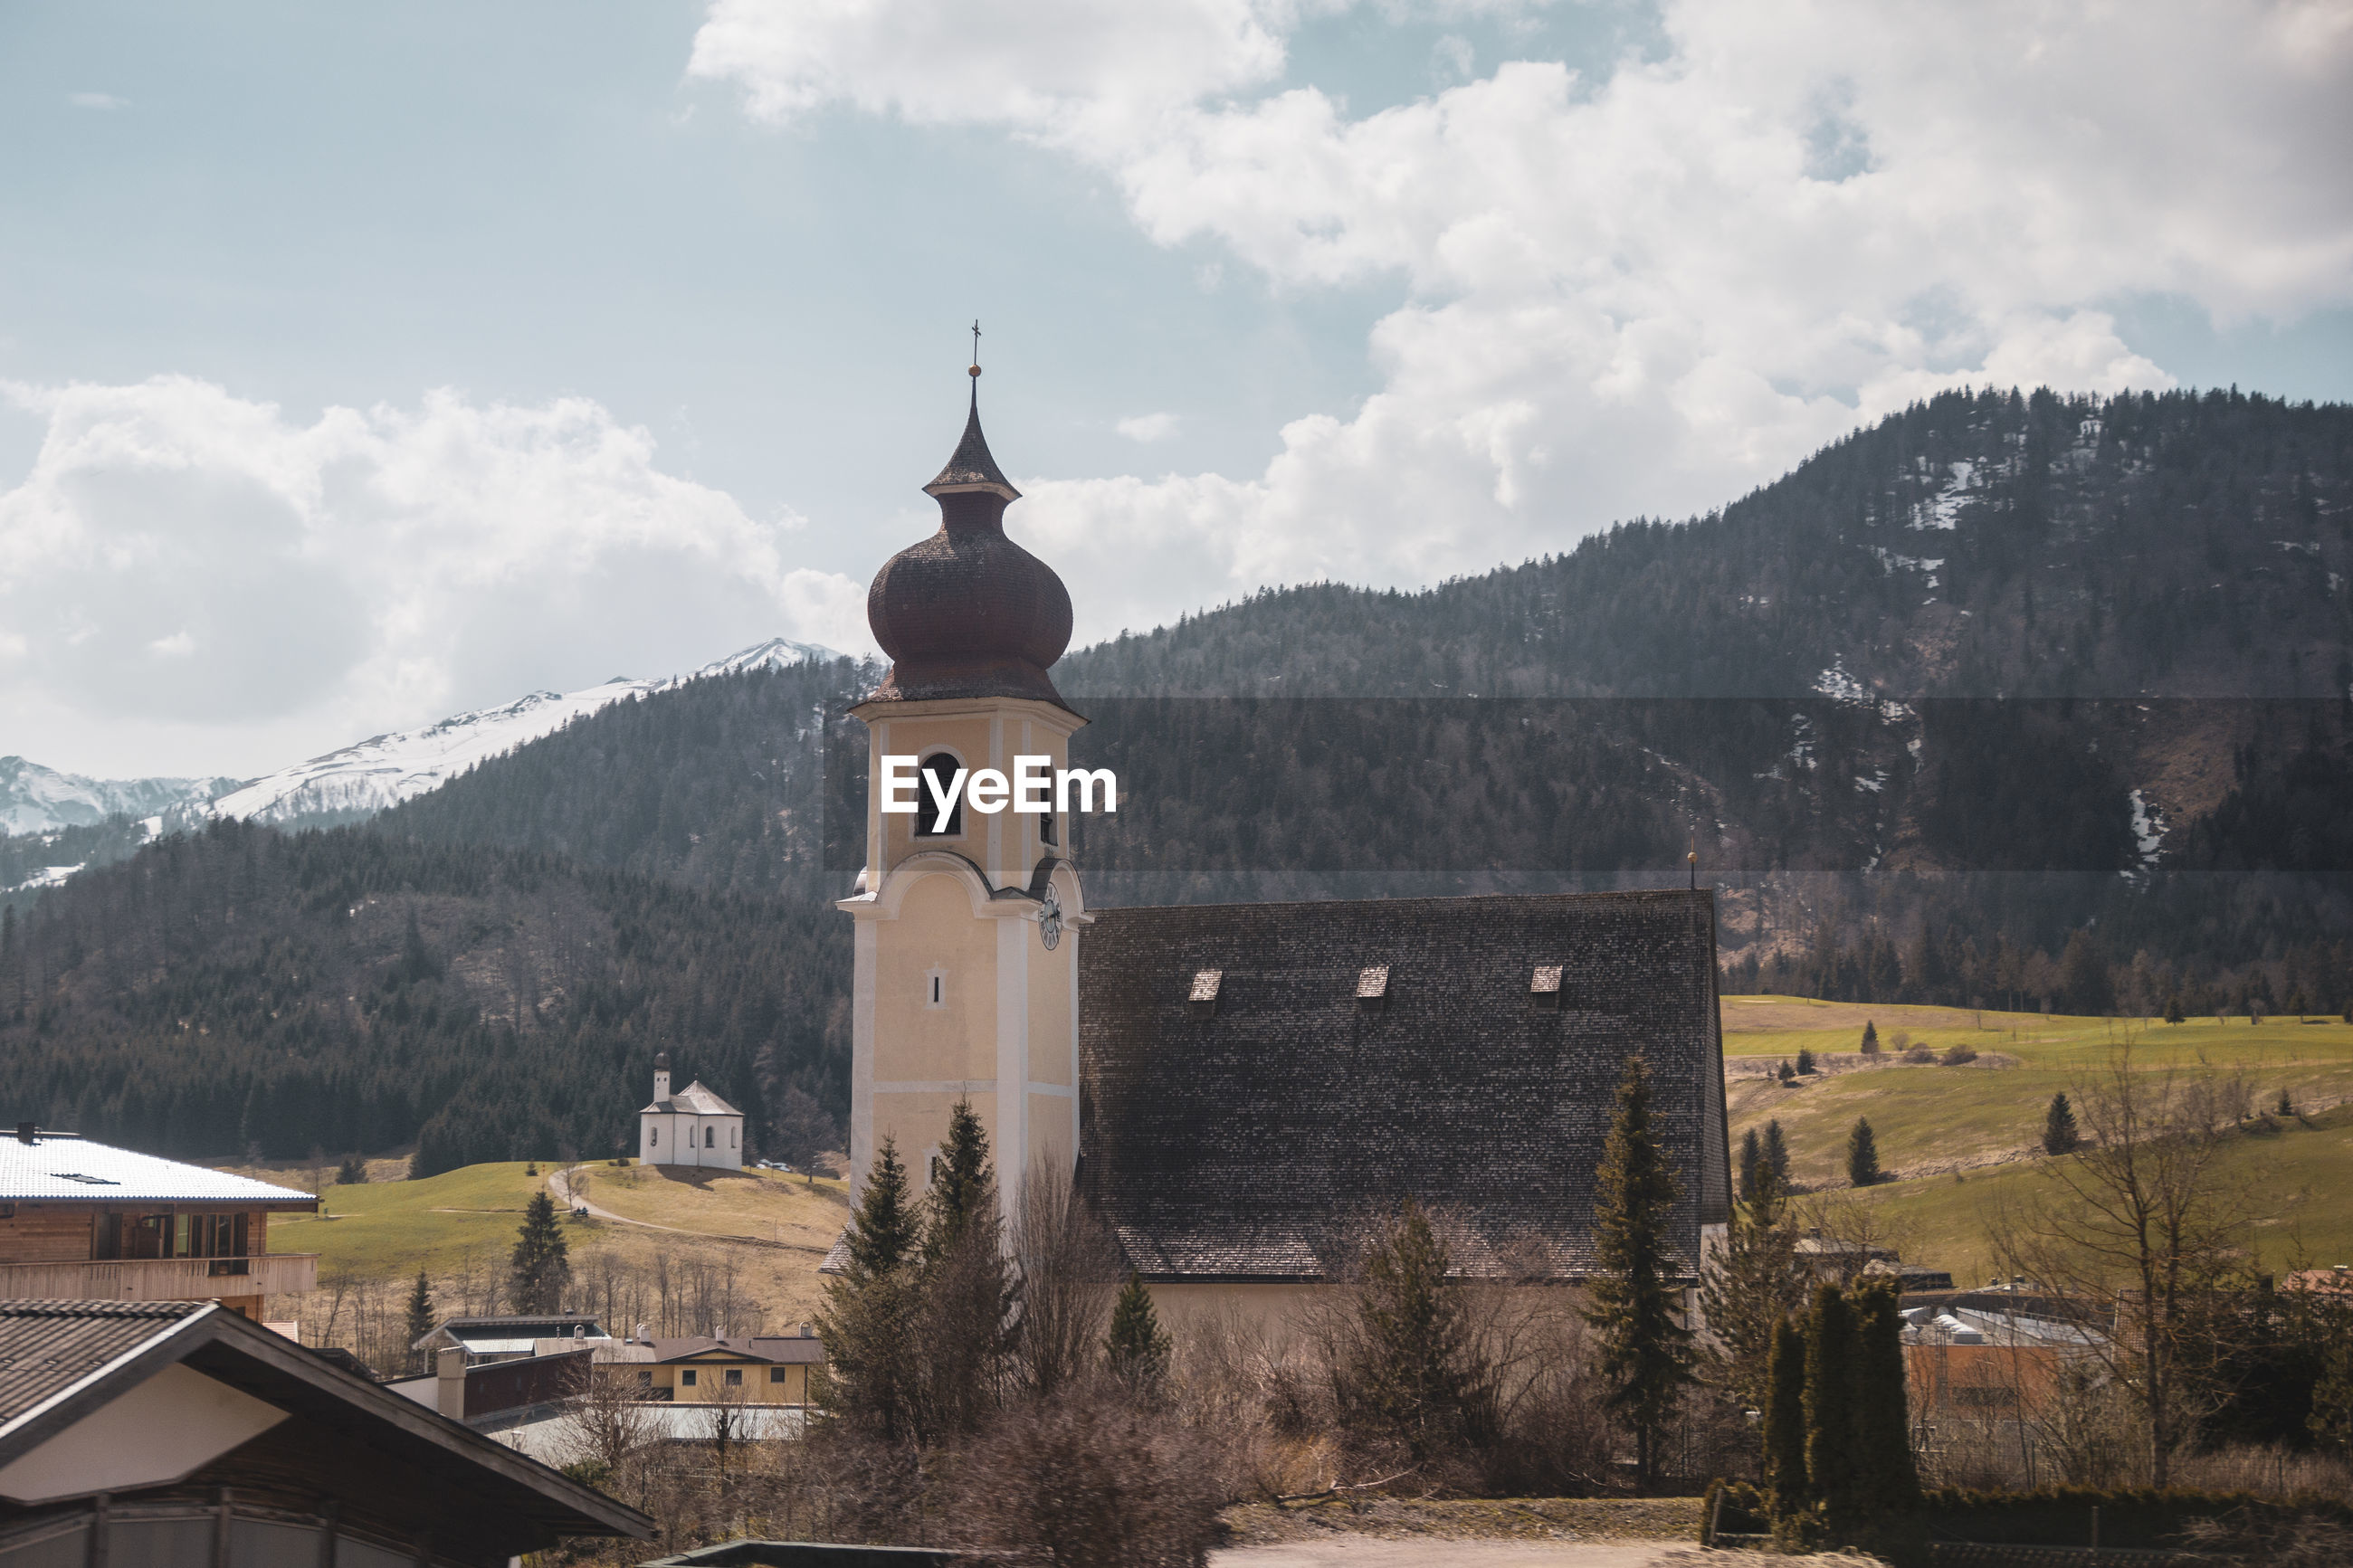 Buildings against sky with mountain in background